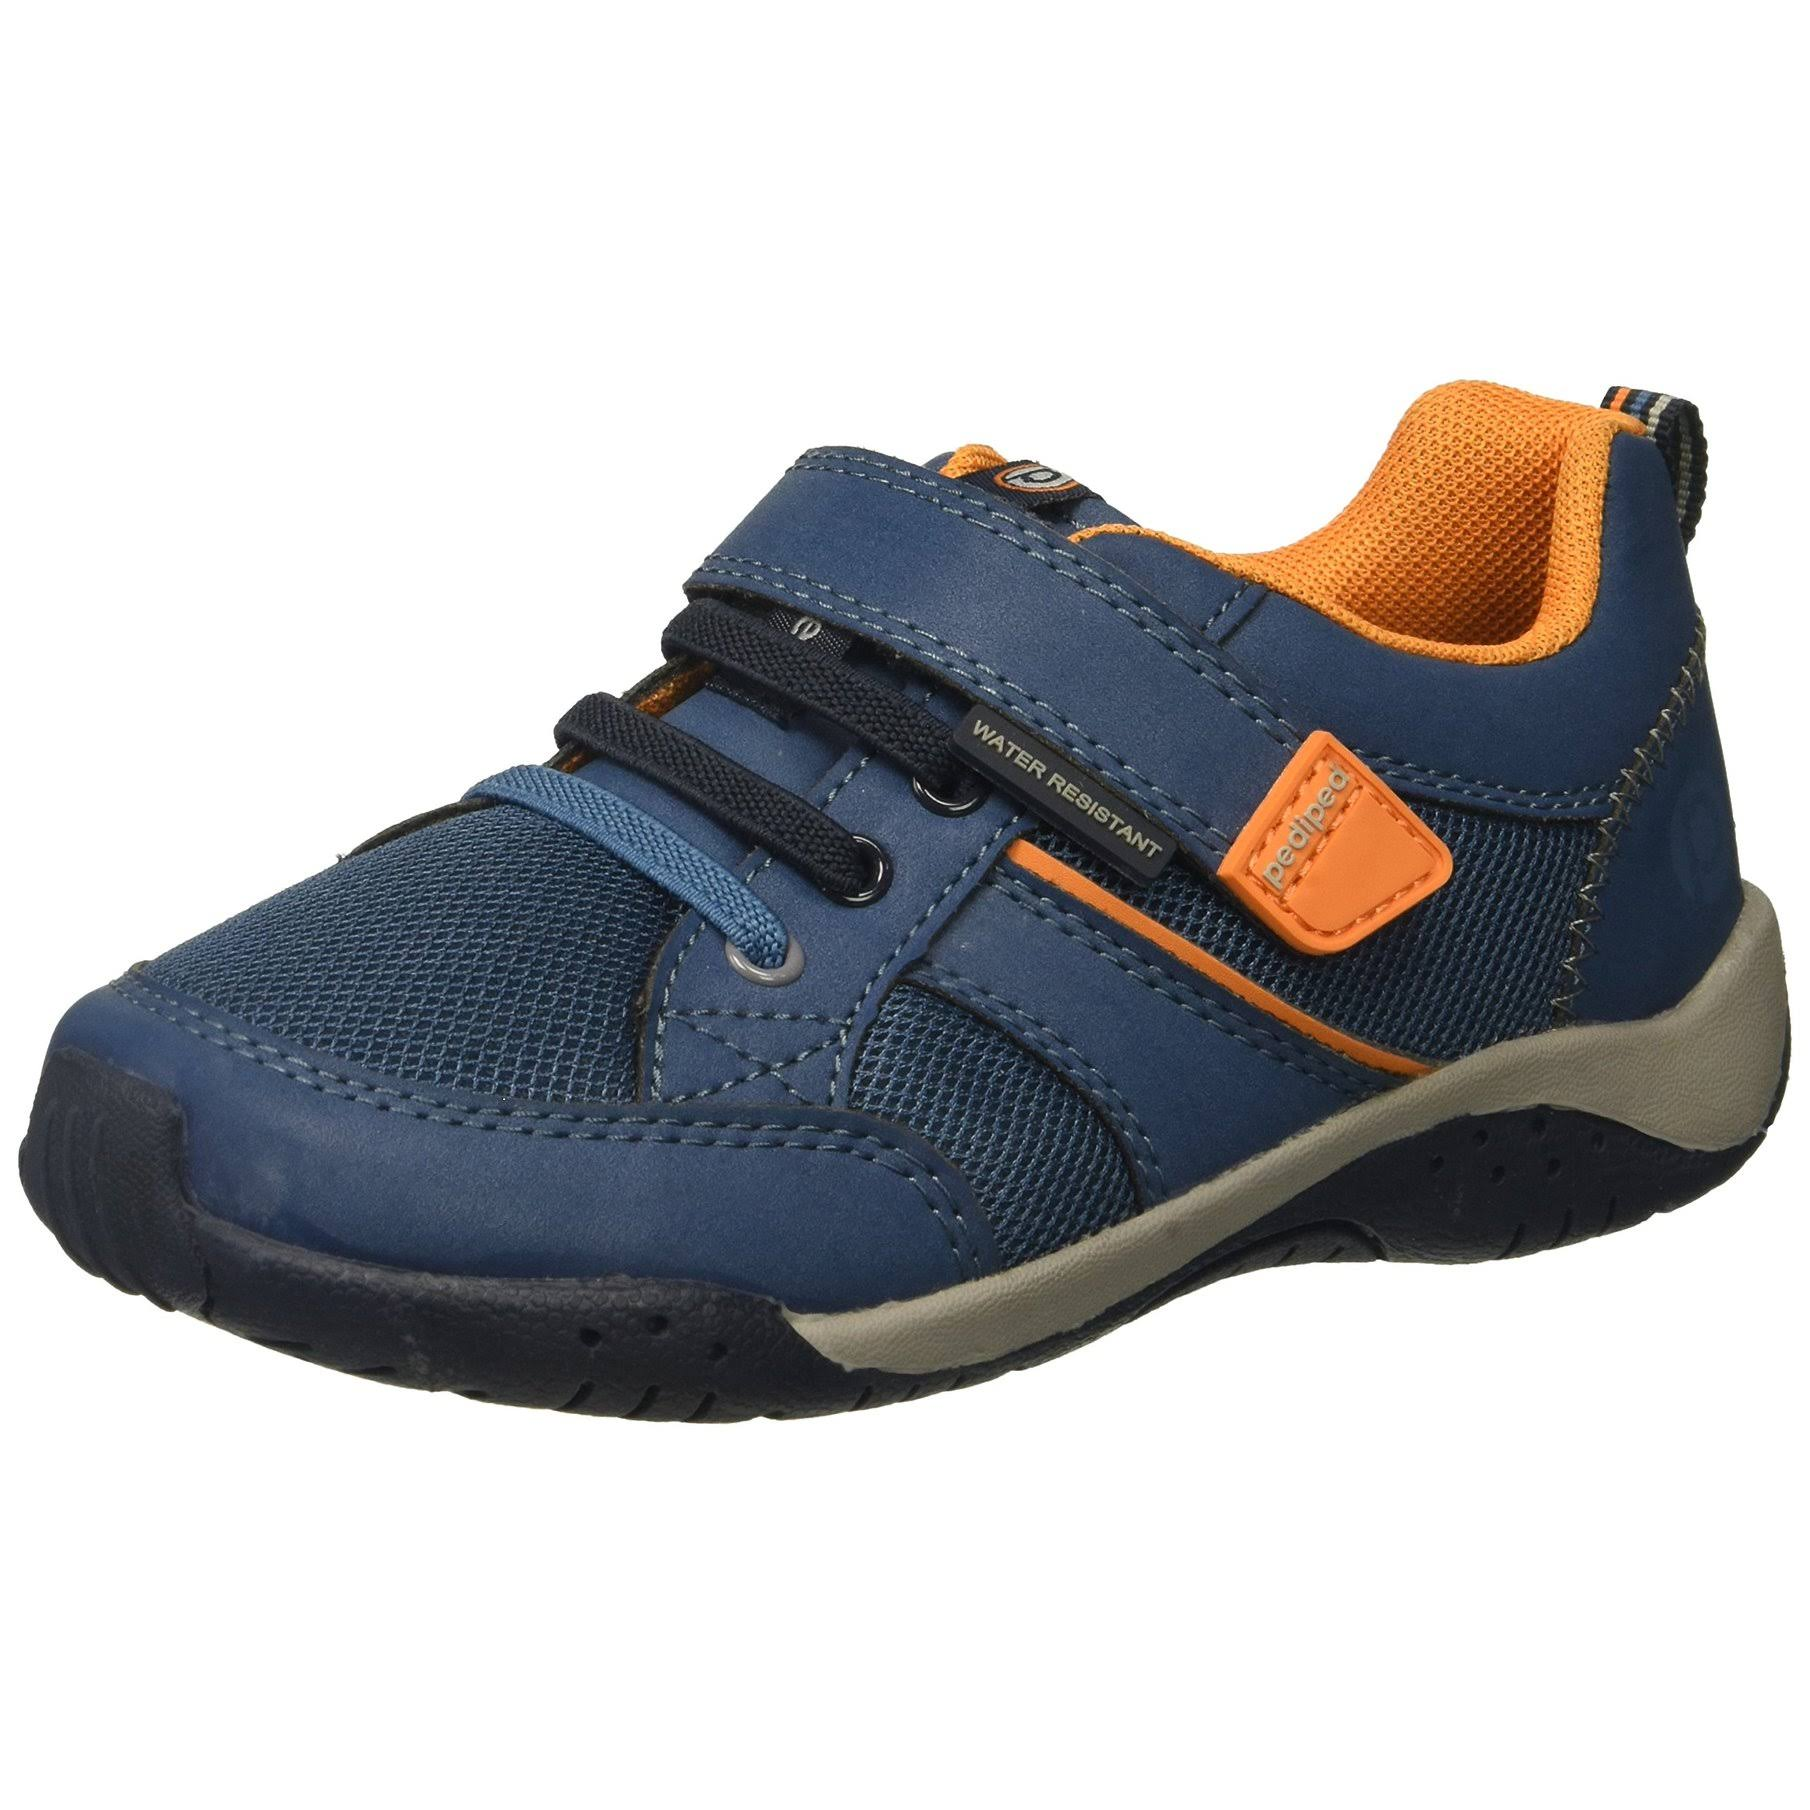 pediped Unisex Flex Justice Sneaker, Navy, 29 E EU Little Kid 12-12.5 US